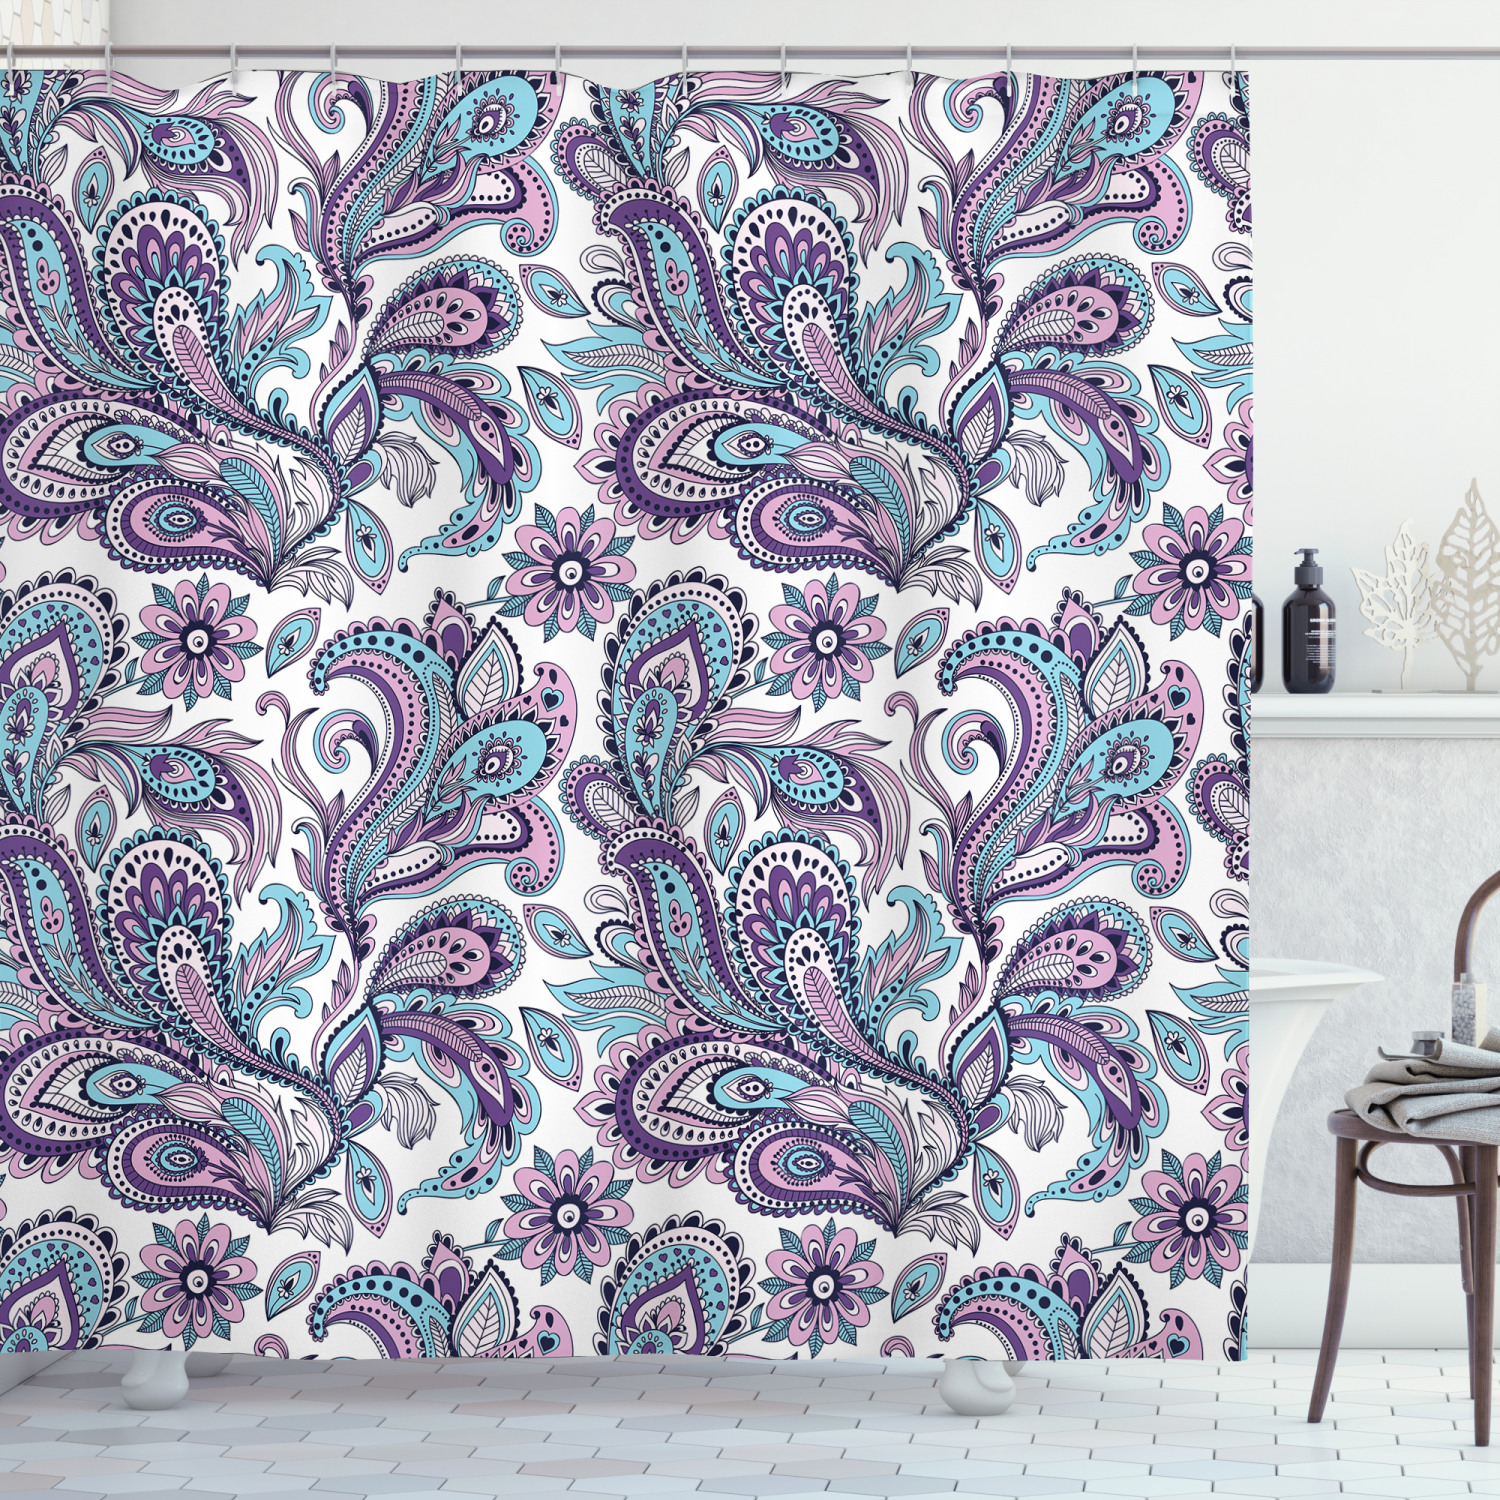 paisley shower curtain blue and purple flowers leaves floral pattern bohemian style country print fabric bathroom set with hooks white purple blue